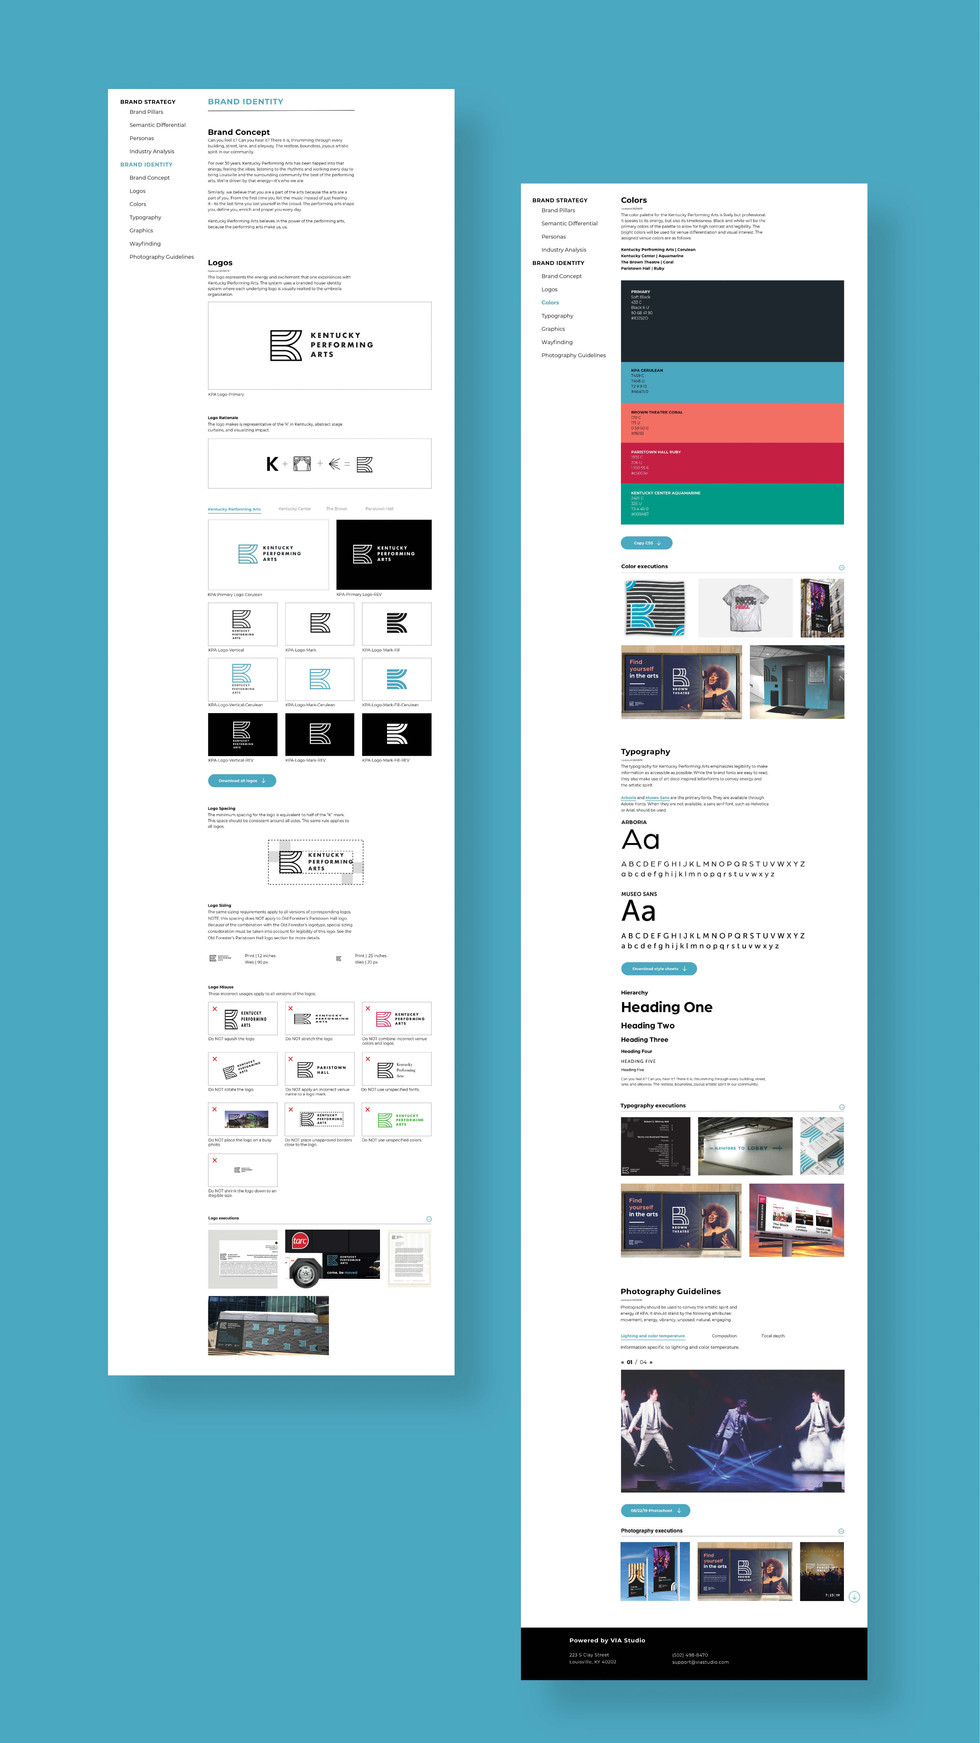 Online brand guide pages